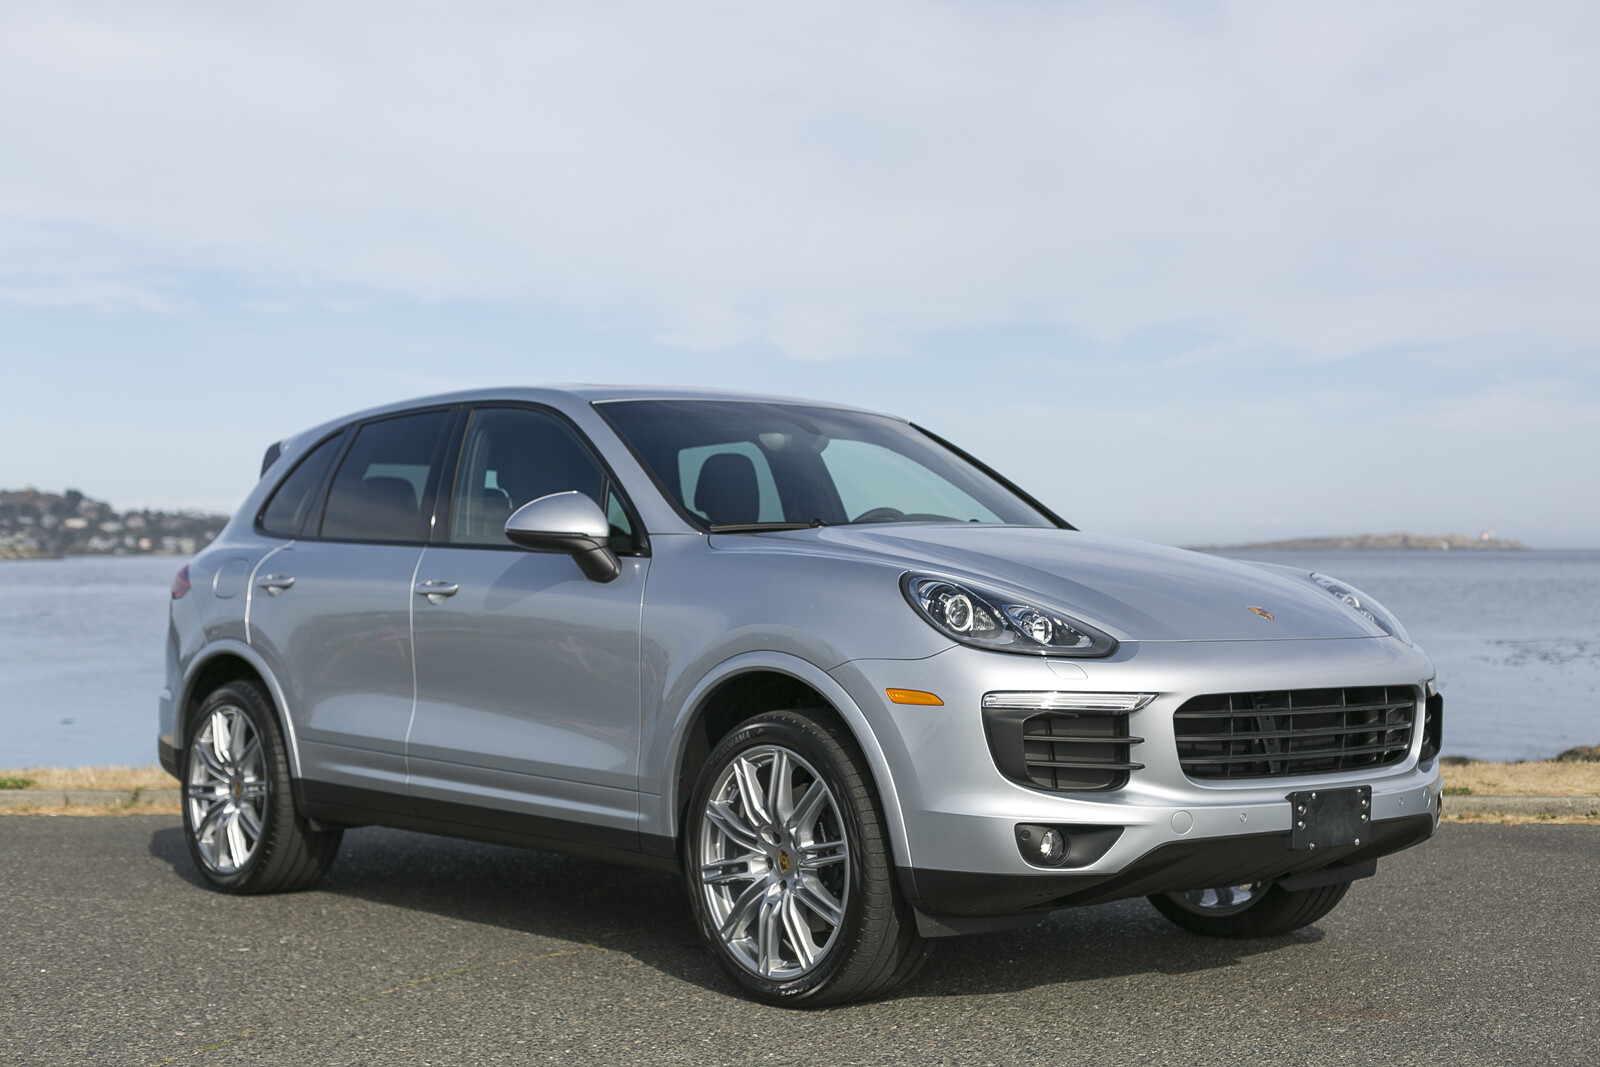 Porsche Cayenne luxury car